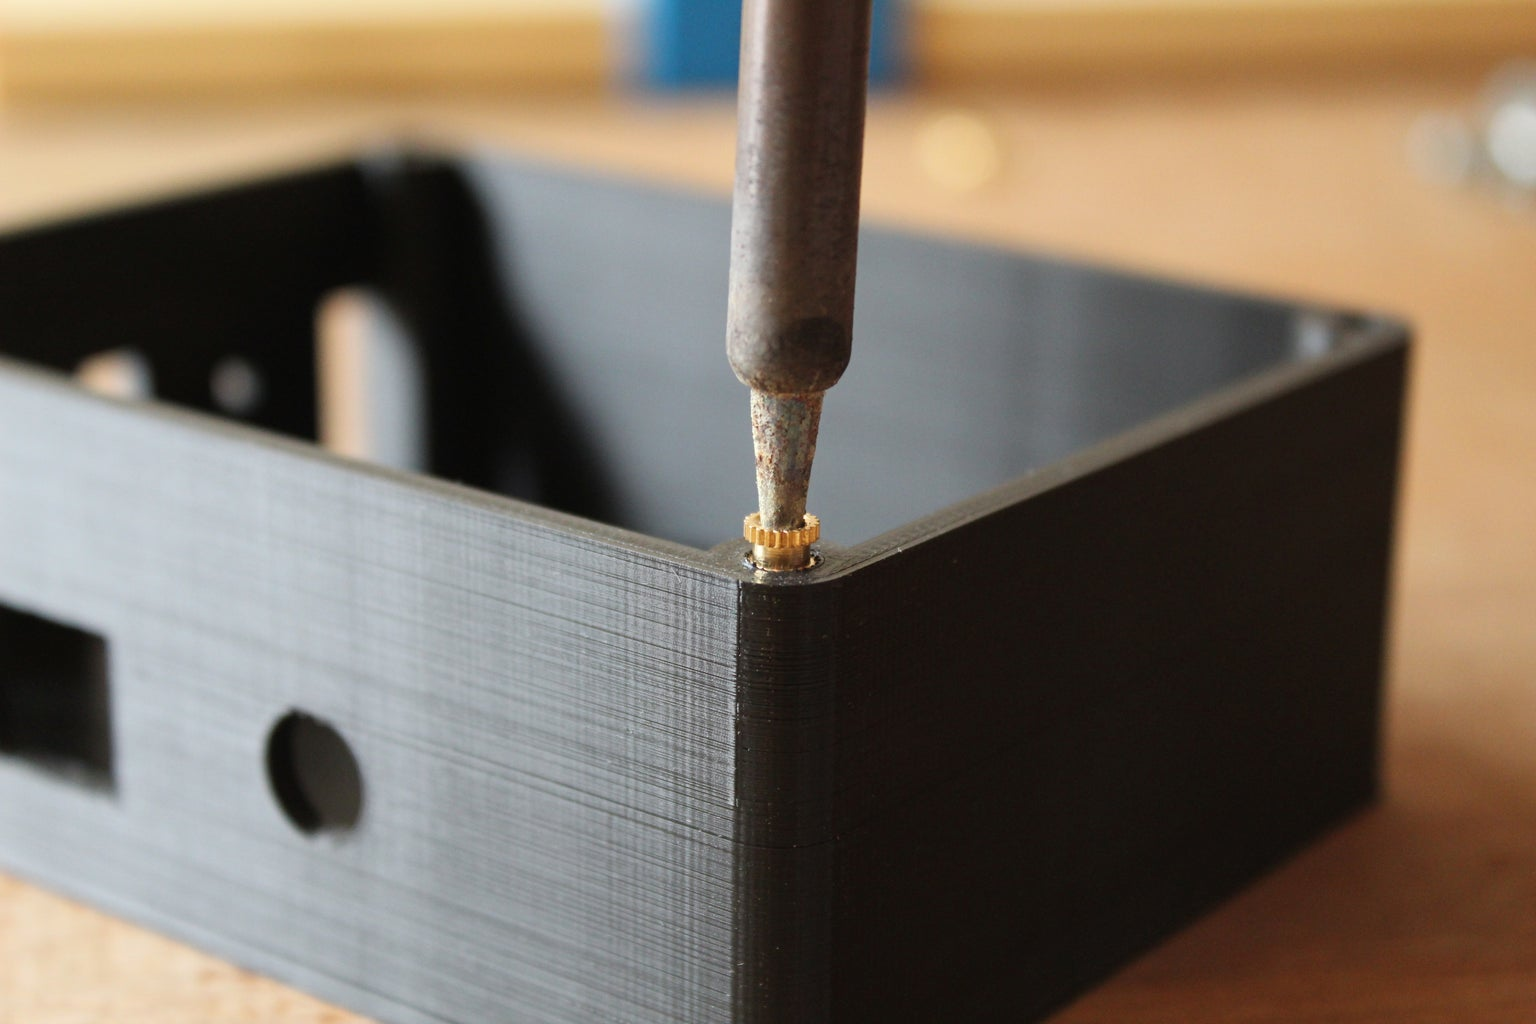 Embedding the Heat-sinks and the Magnets